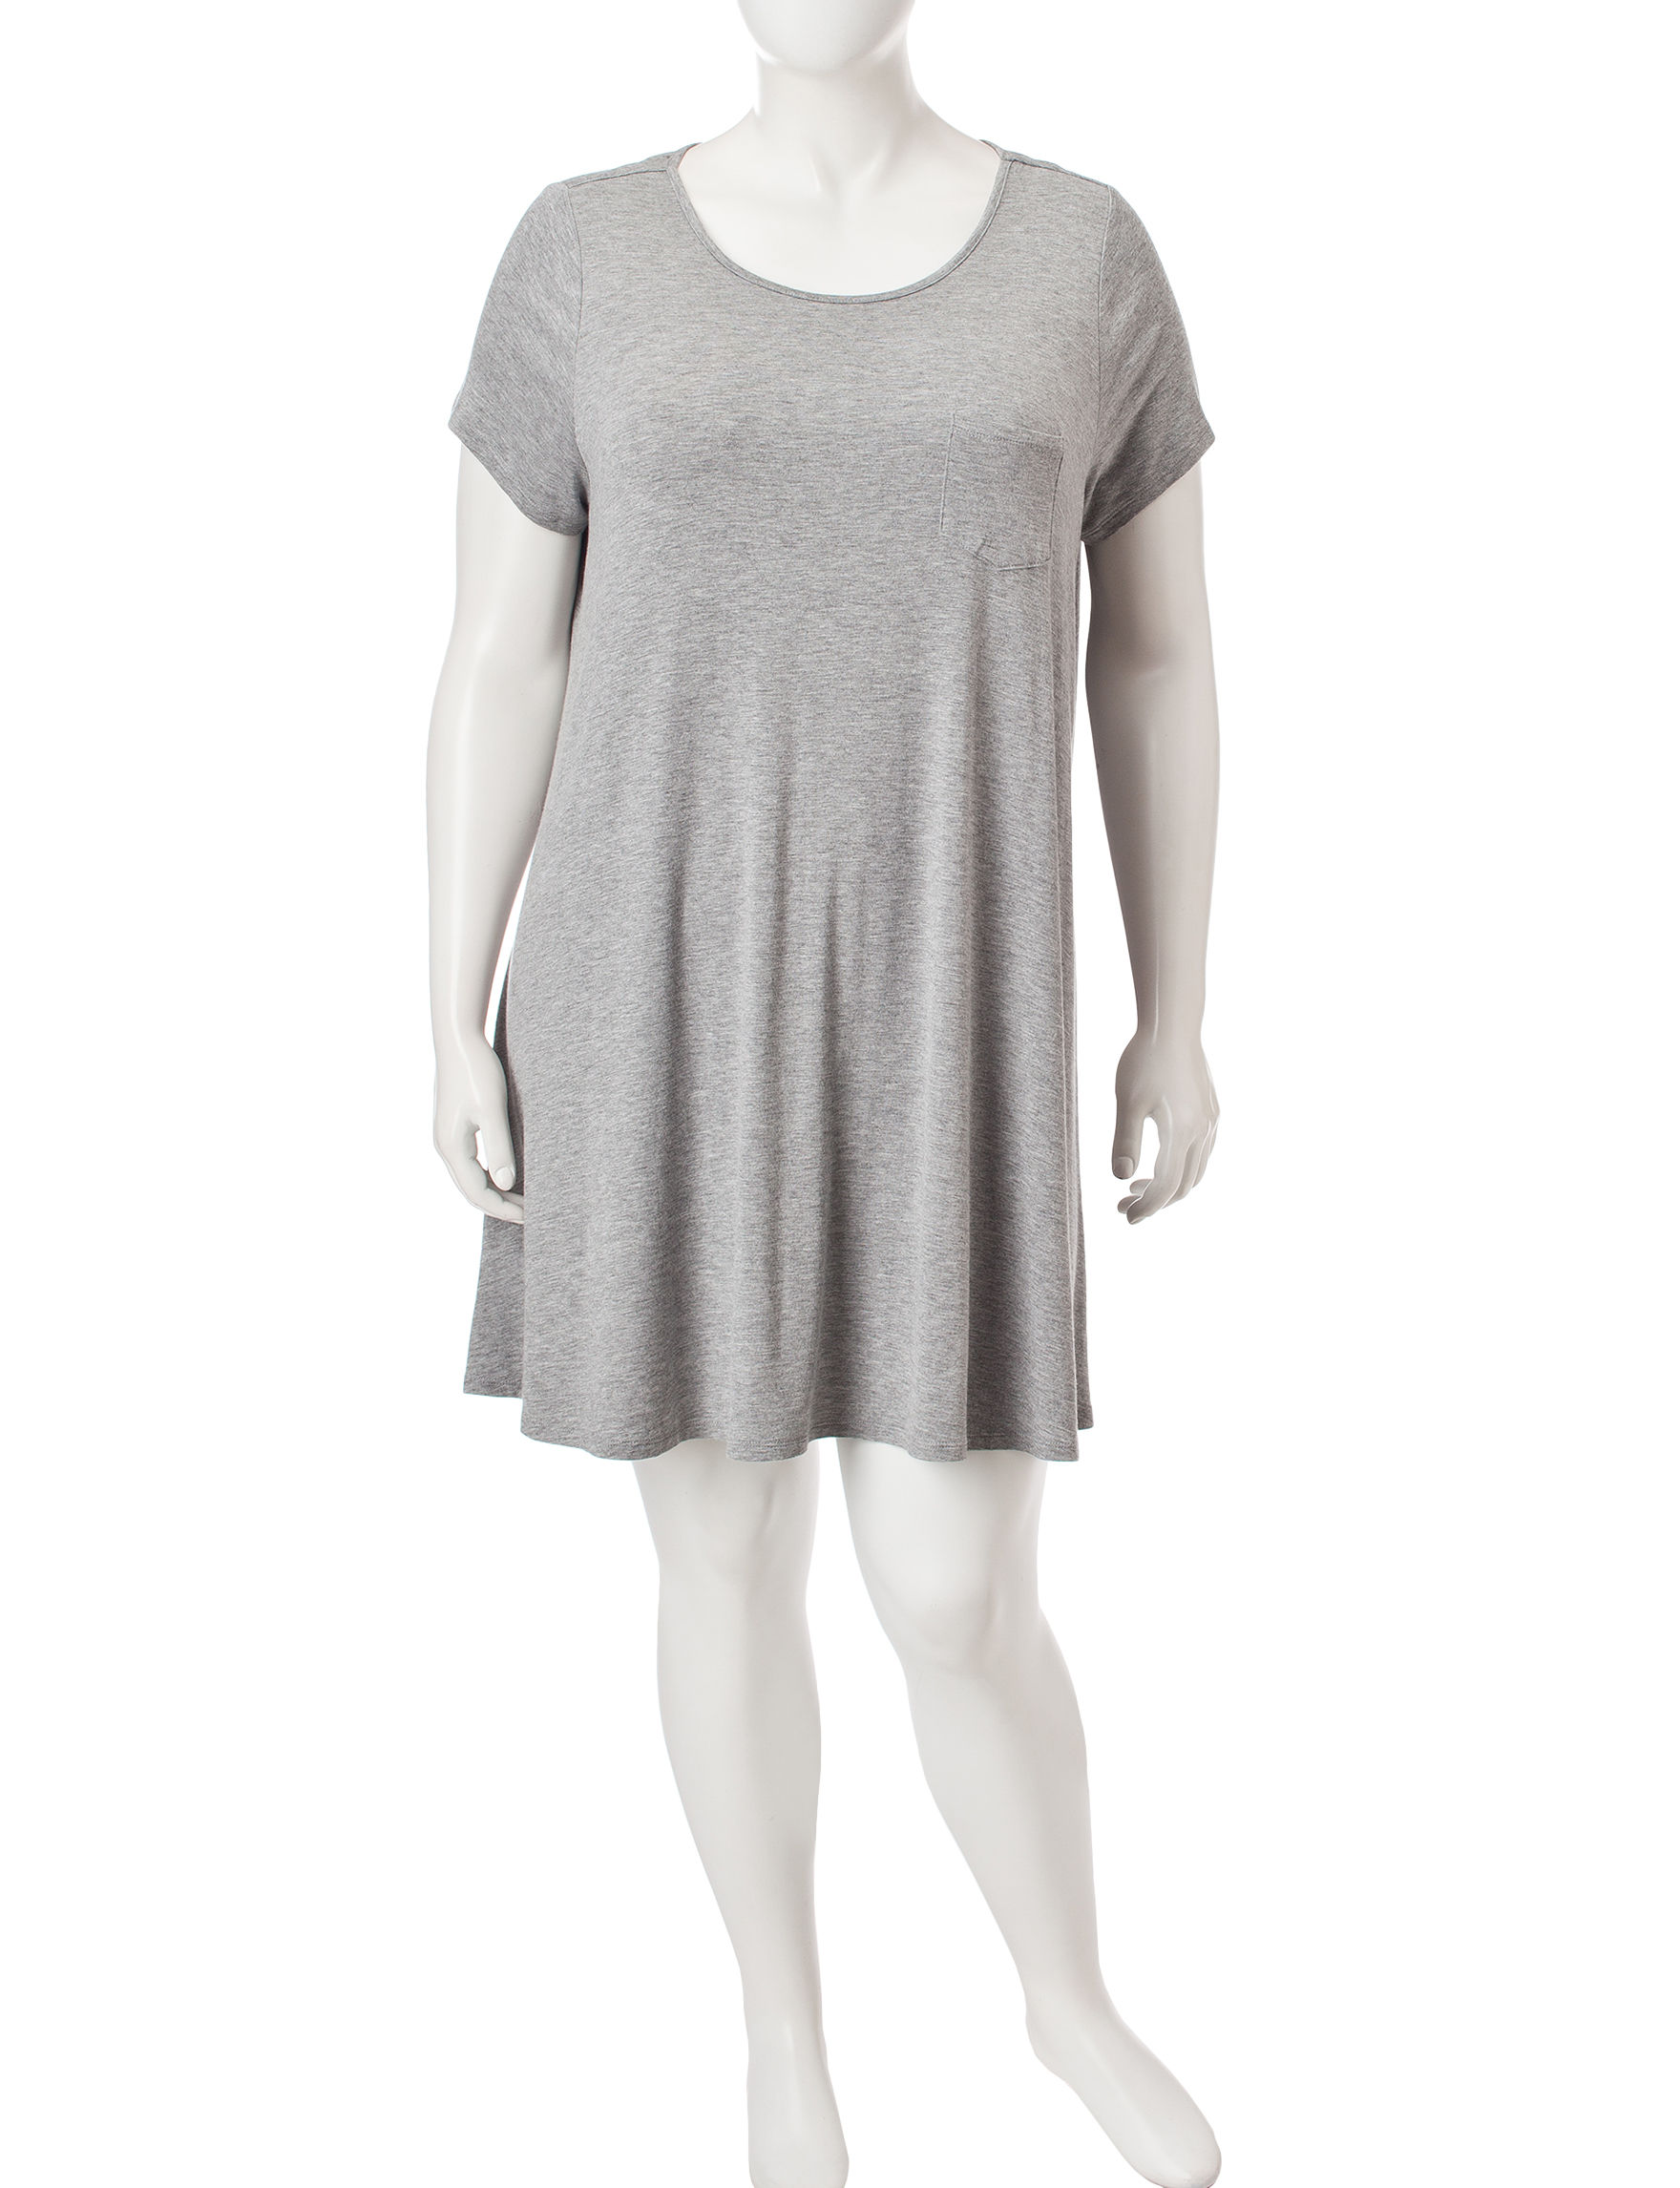 Fire Charcoal Everyday & Casual Shirt Dresses